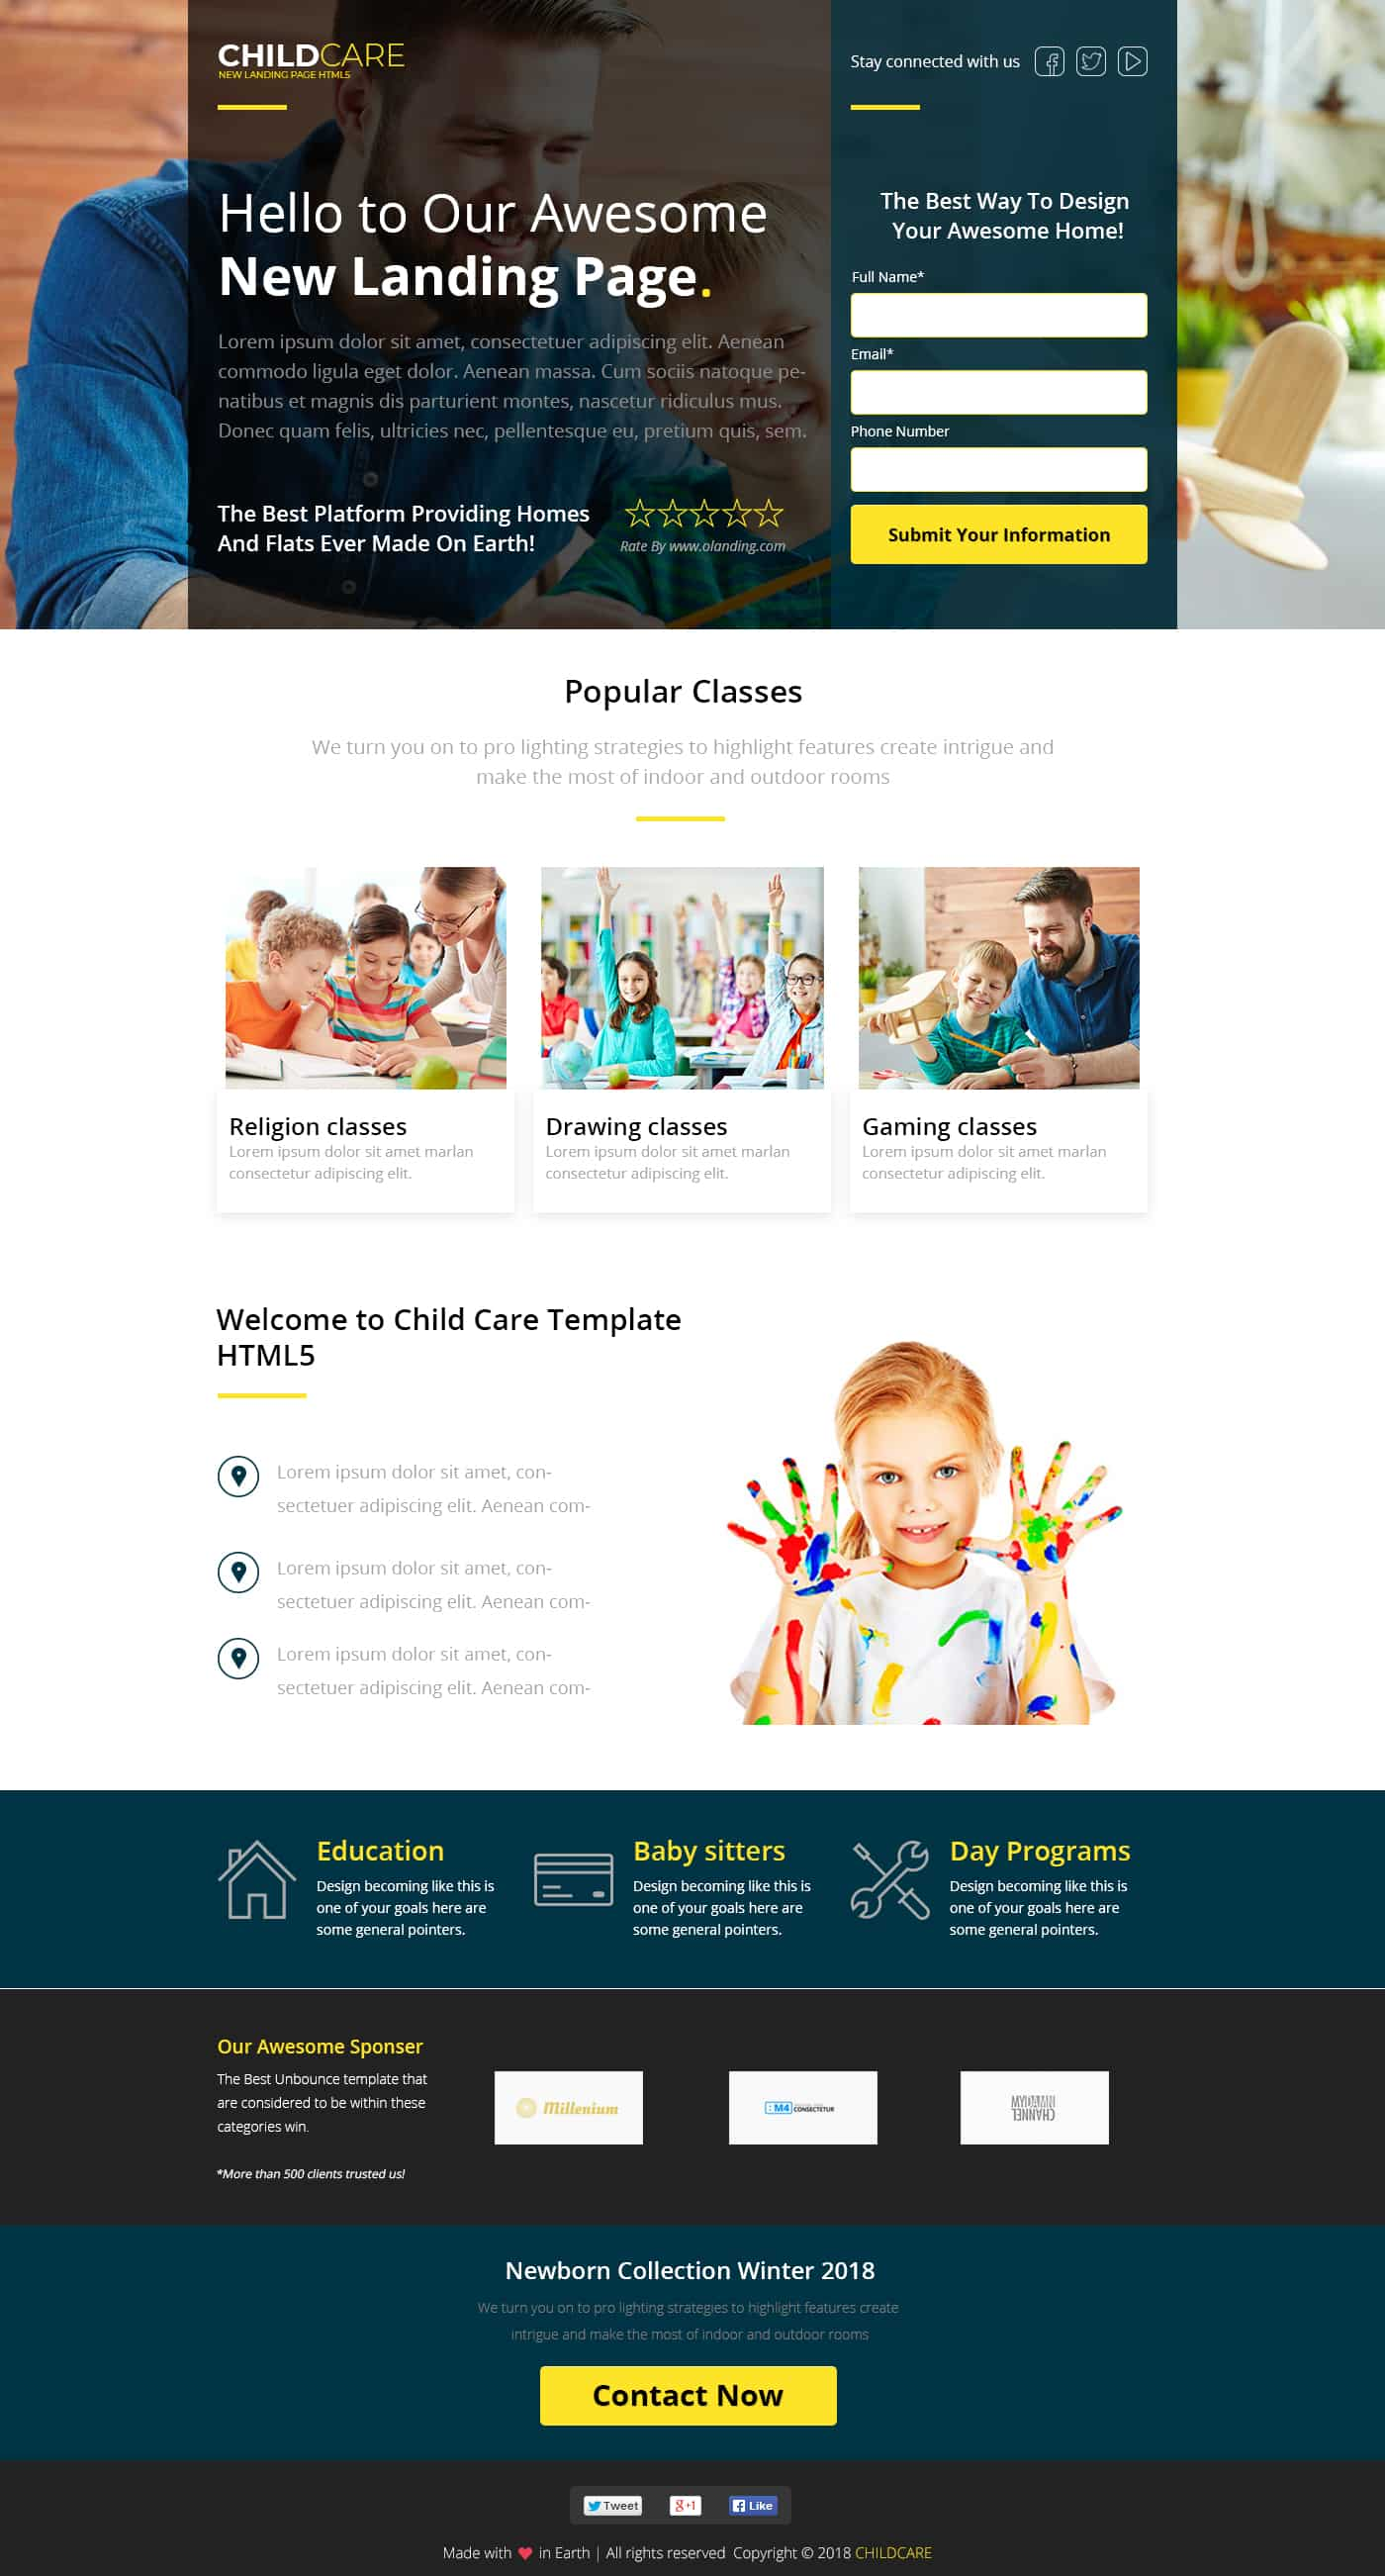 Child Care Landing Page